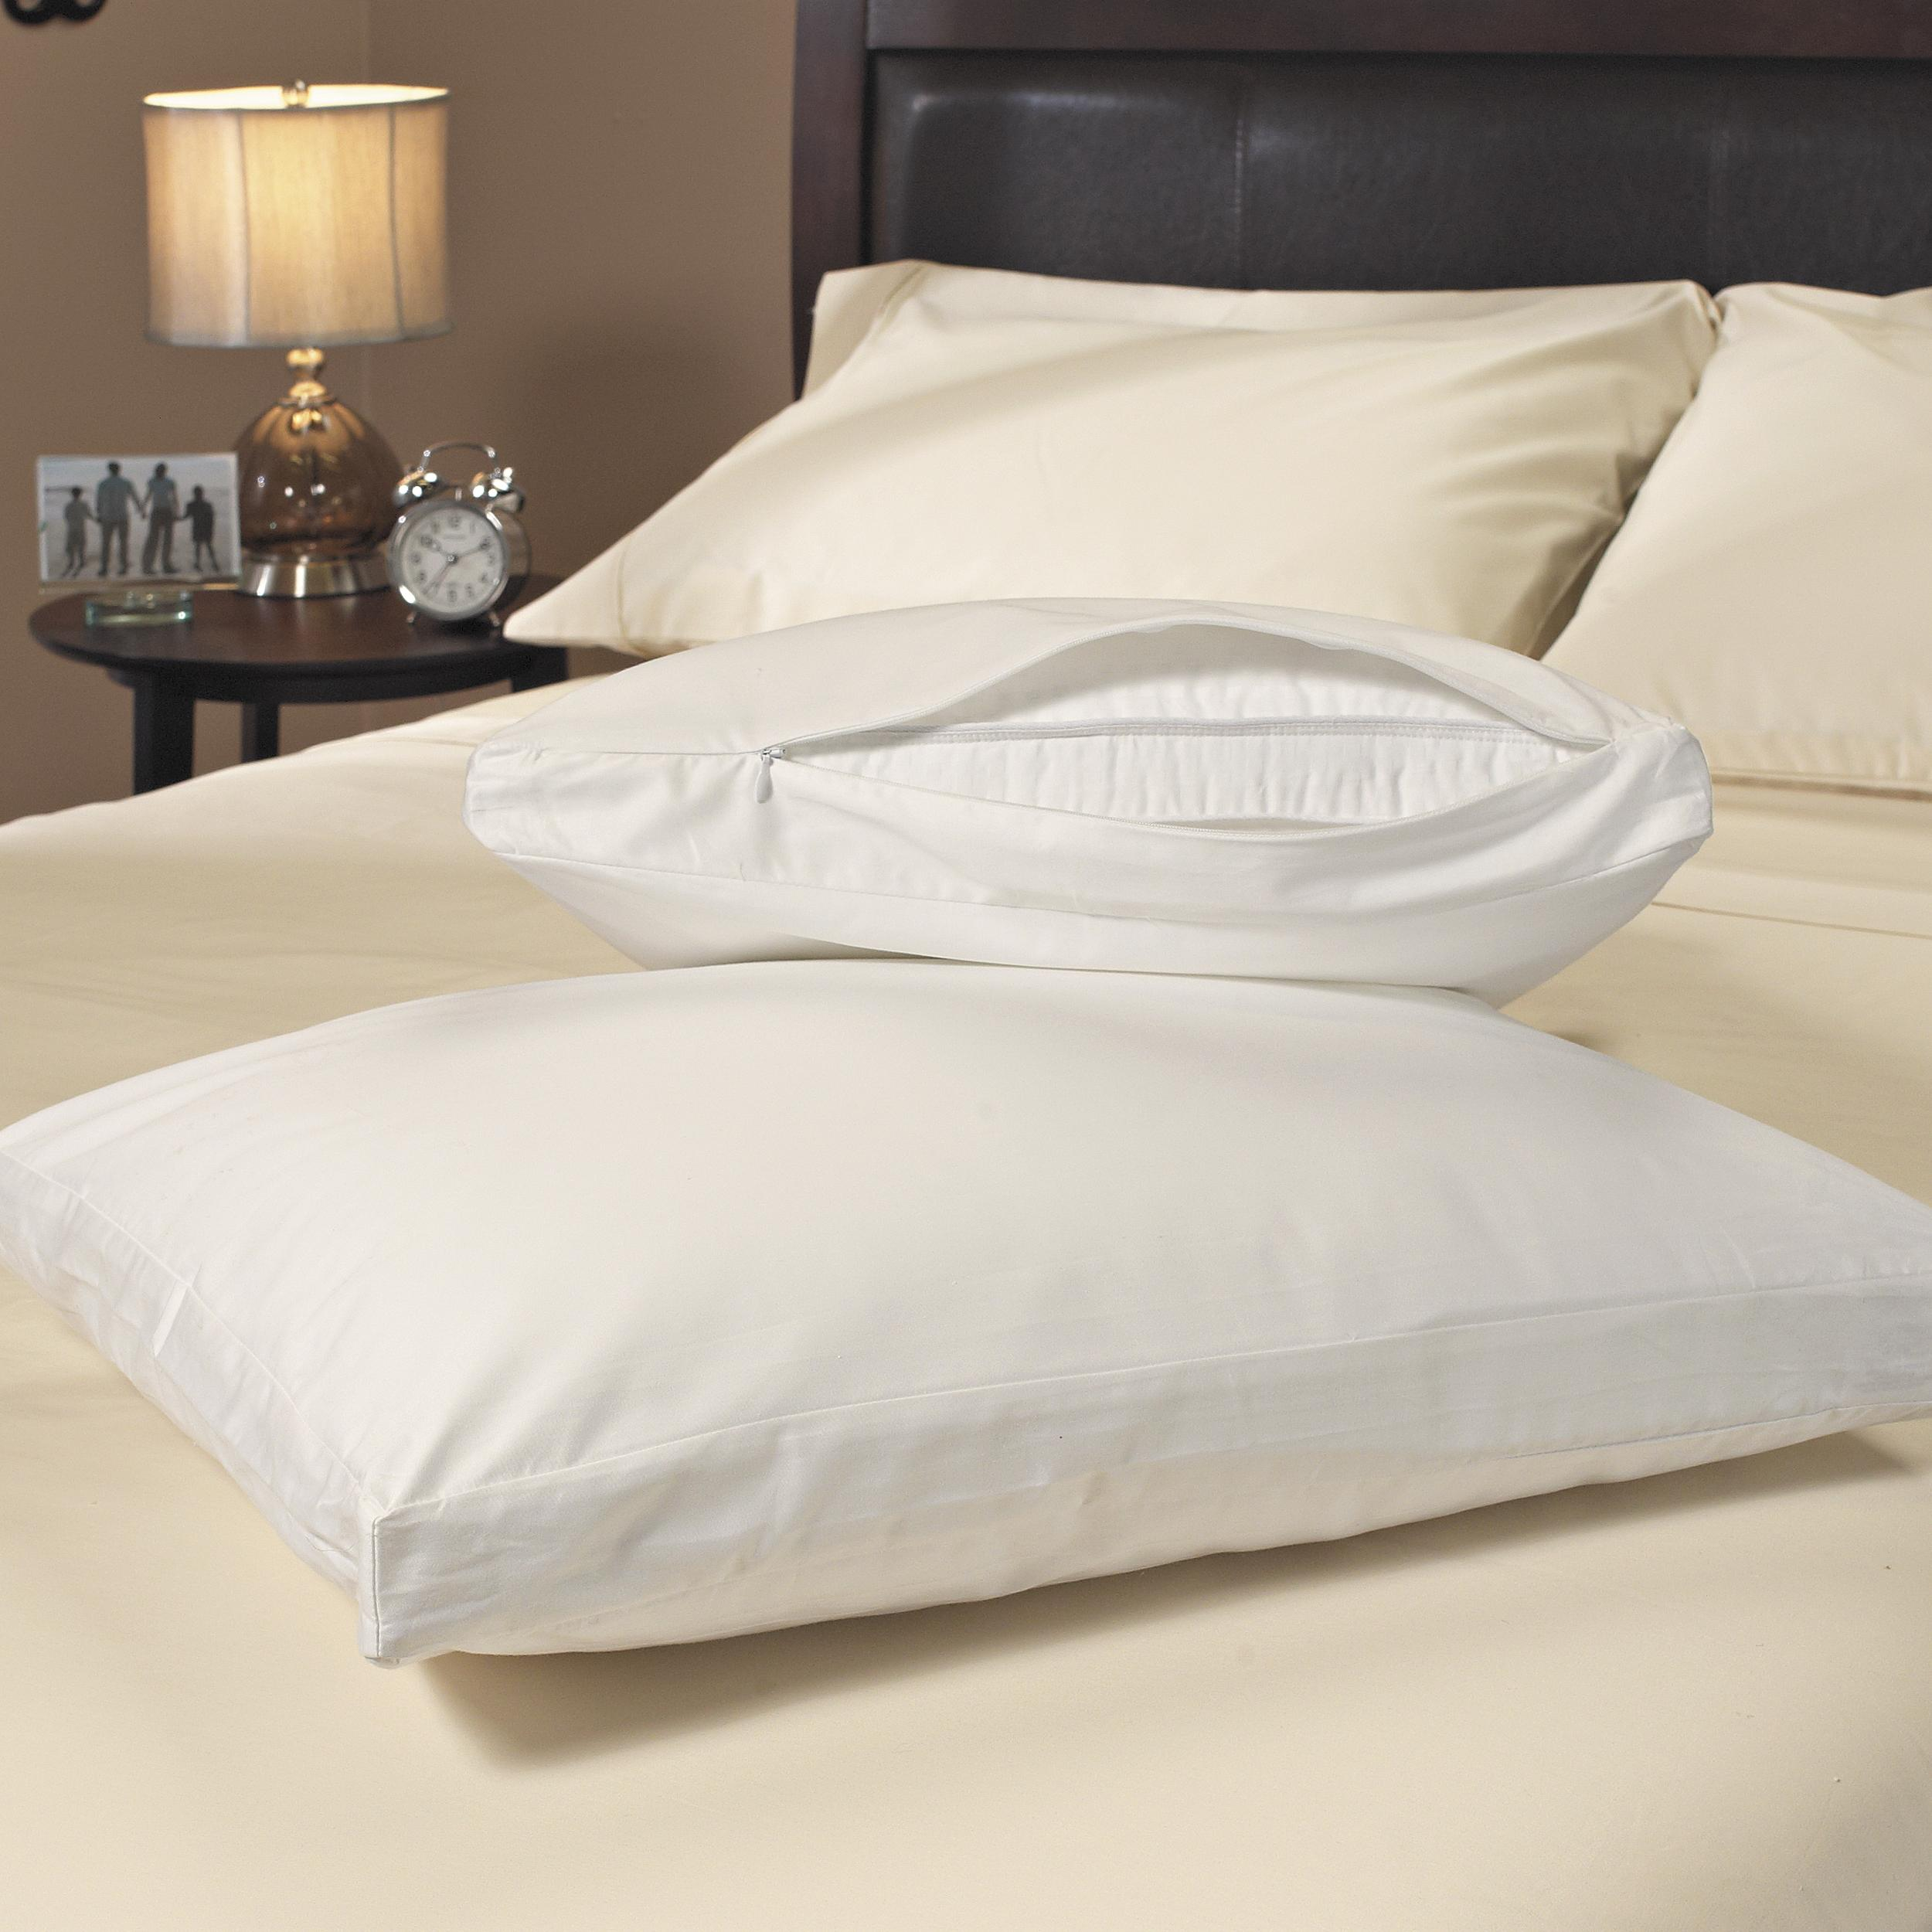 Stain Resistant 300 Thread Count Gusseted Zip Pillow Protector (Set of 2) - Thumbnail 0